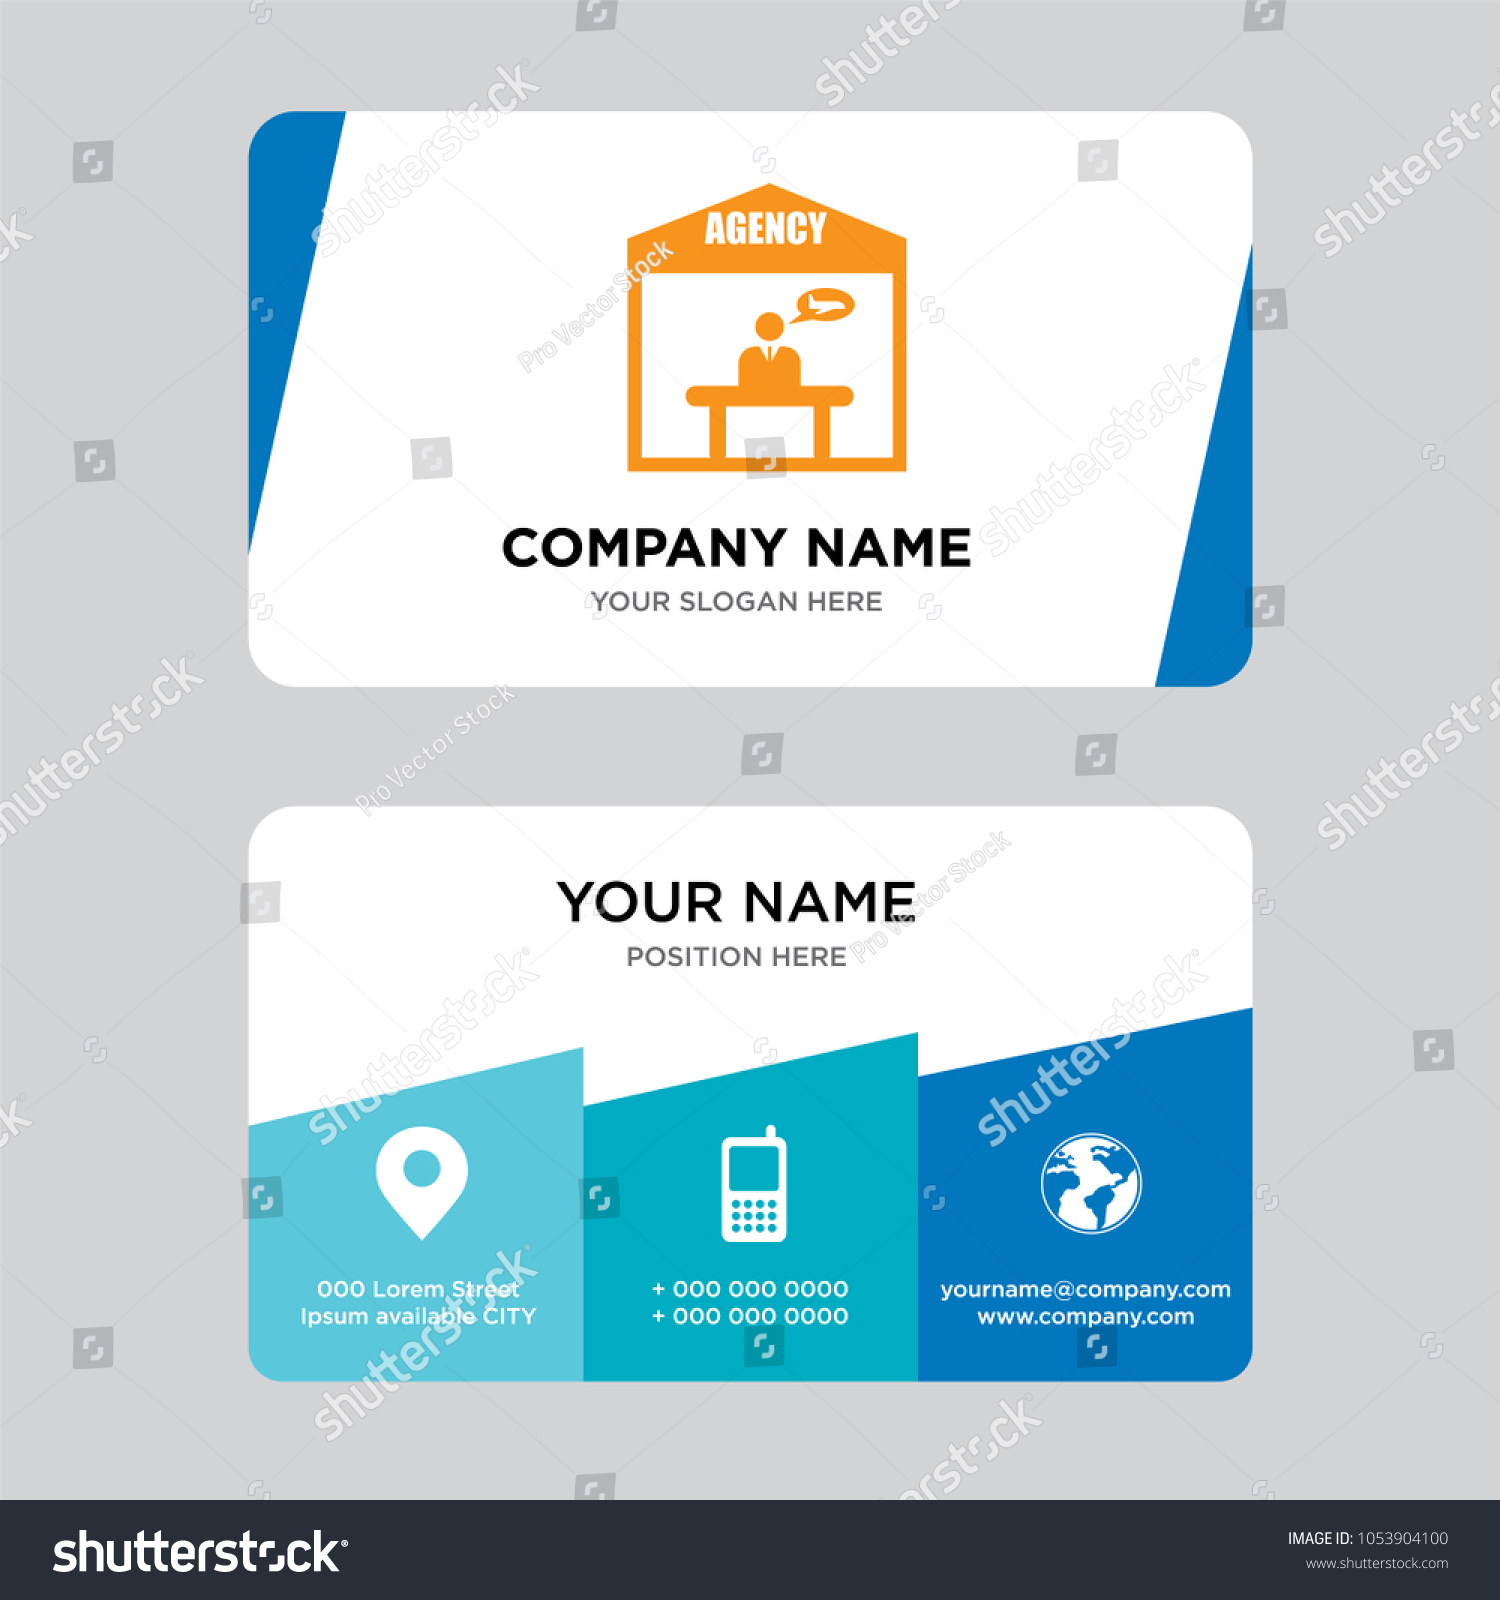 Travel Agency Business Card Design Template Stock Vector 1053904100 ...